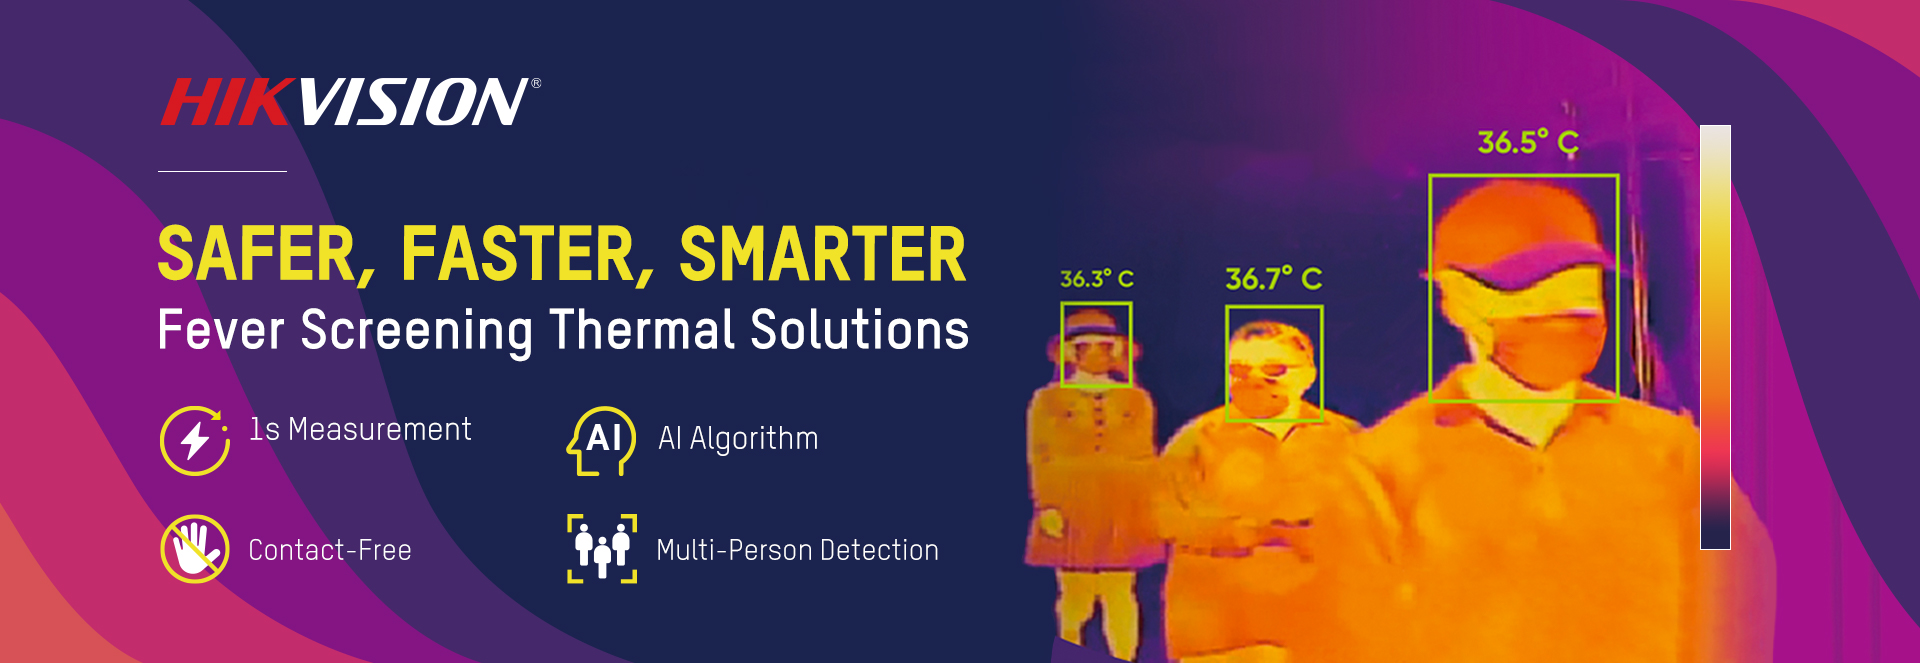 Hikvision-thermal-fever-screening-solutions